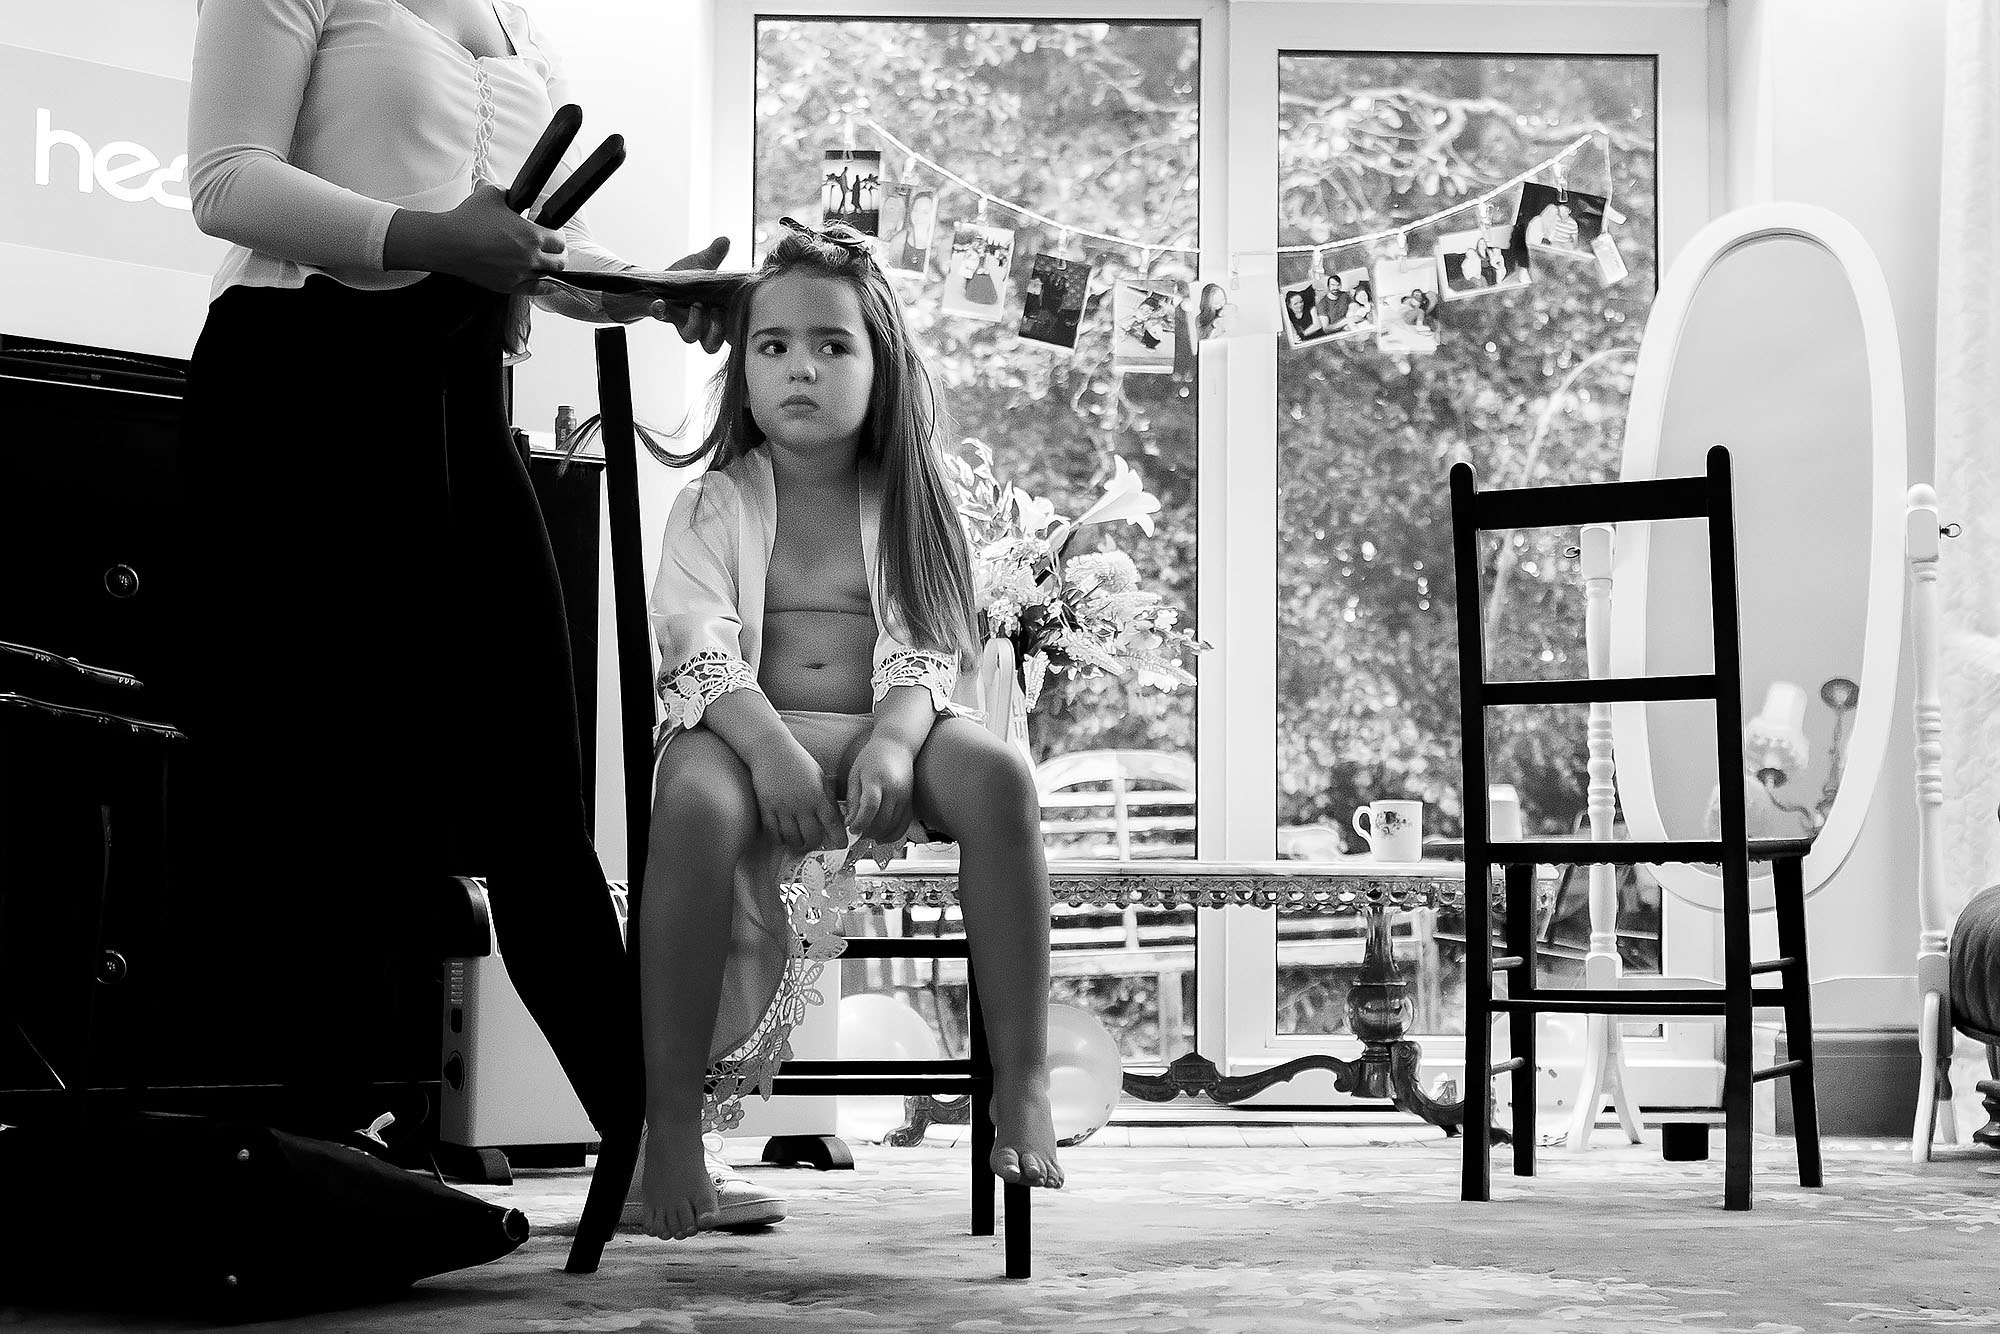 Flower girl pulling grumpy face as she sits legs dangling on a chair having hair done on wedding morning | Wellbeing Farm wedding photographs by Toni Darcy Photography